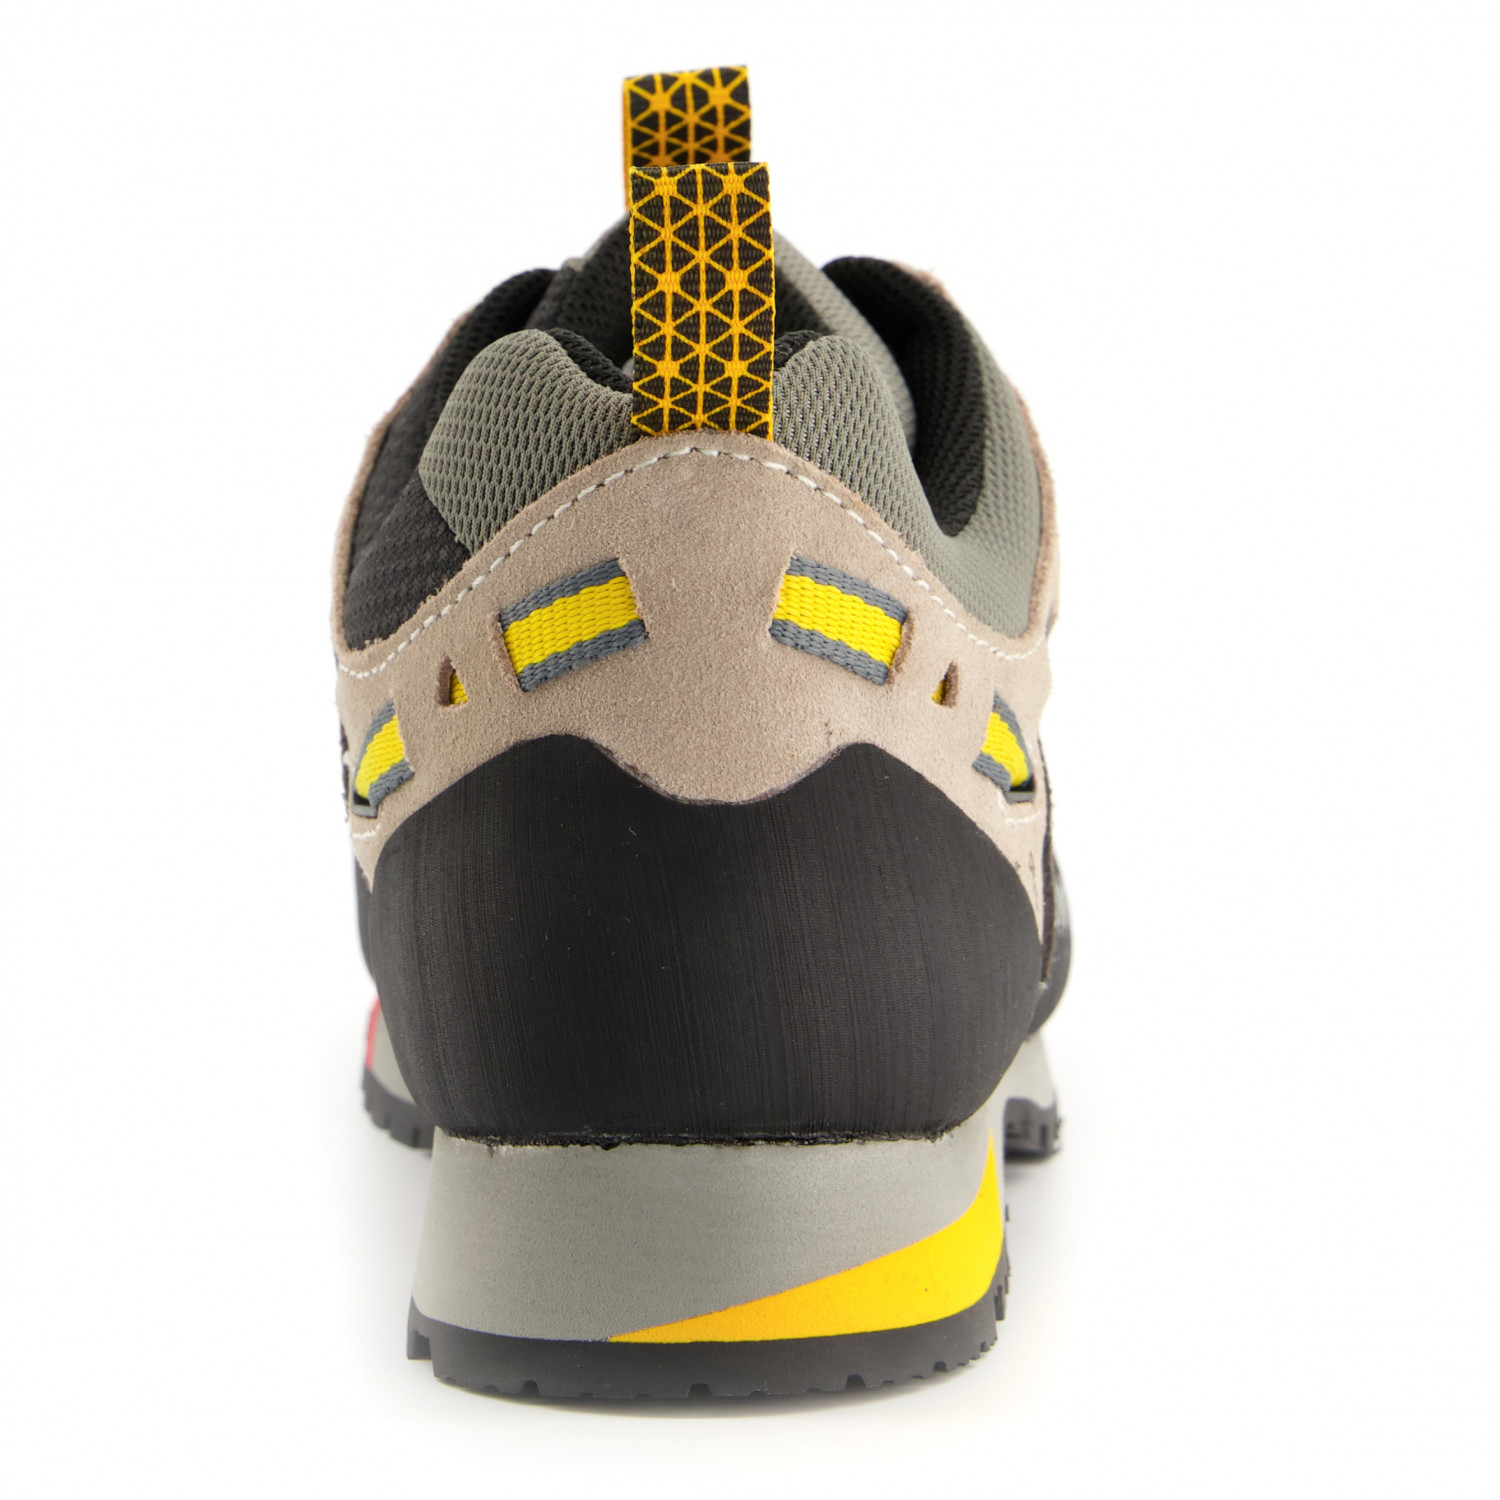 ... Garmont - Dragontail LT - Approach shoes ... 0833419990f